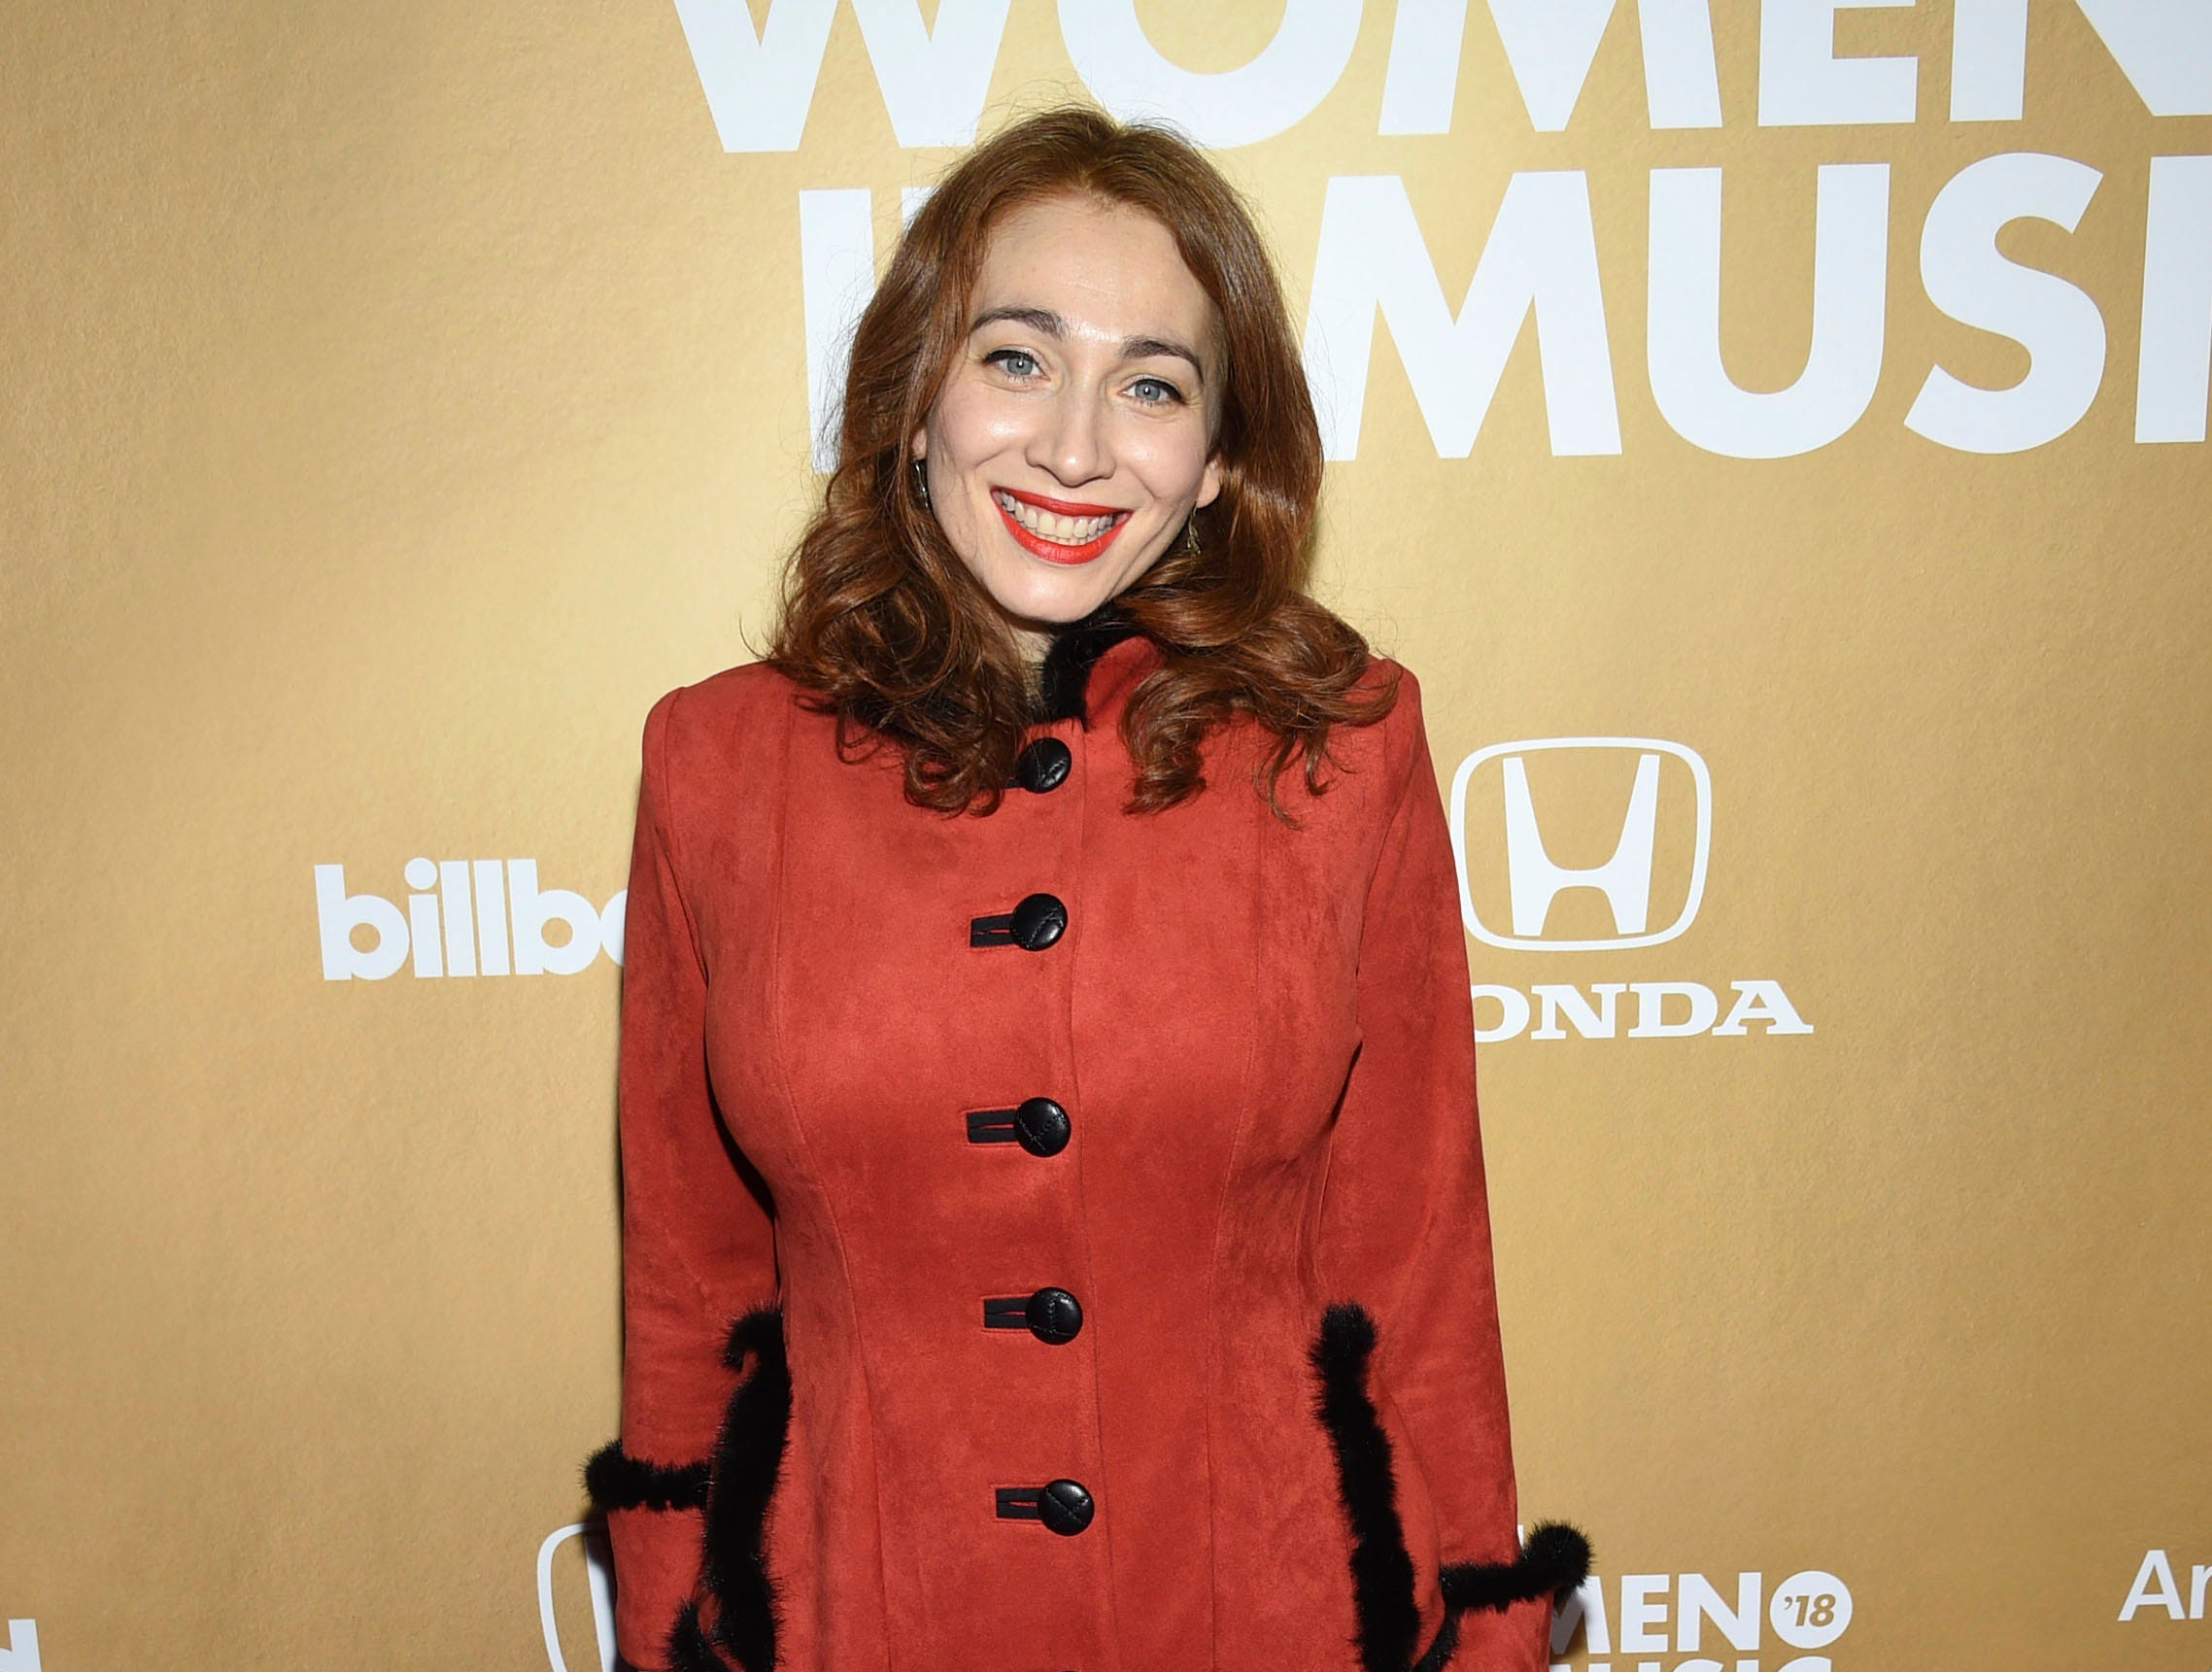 Regina Spektor attends the 13th annual Billboard Women in Music event at Pier 36 on Thursday, Dec. 6, 2018, in New York. (Photo by Evan Agostini/Invision/AP) ORG XMIT: CABR102